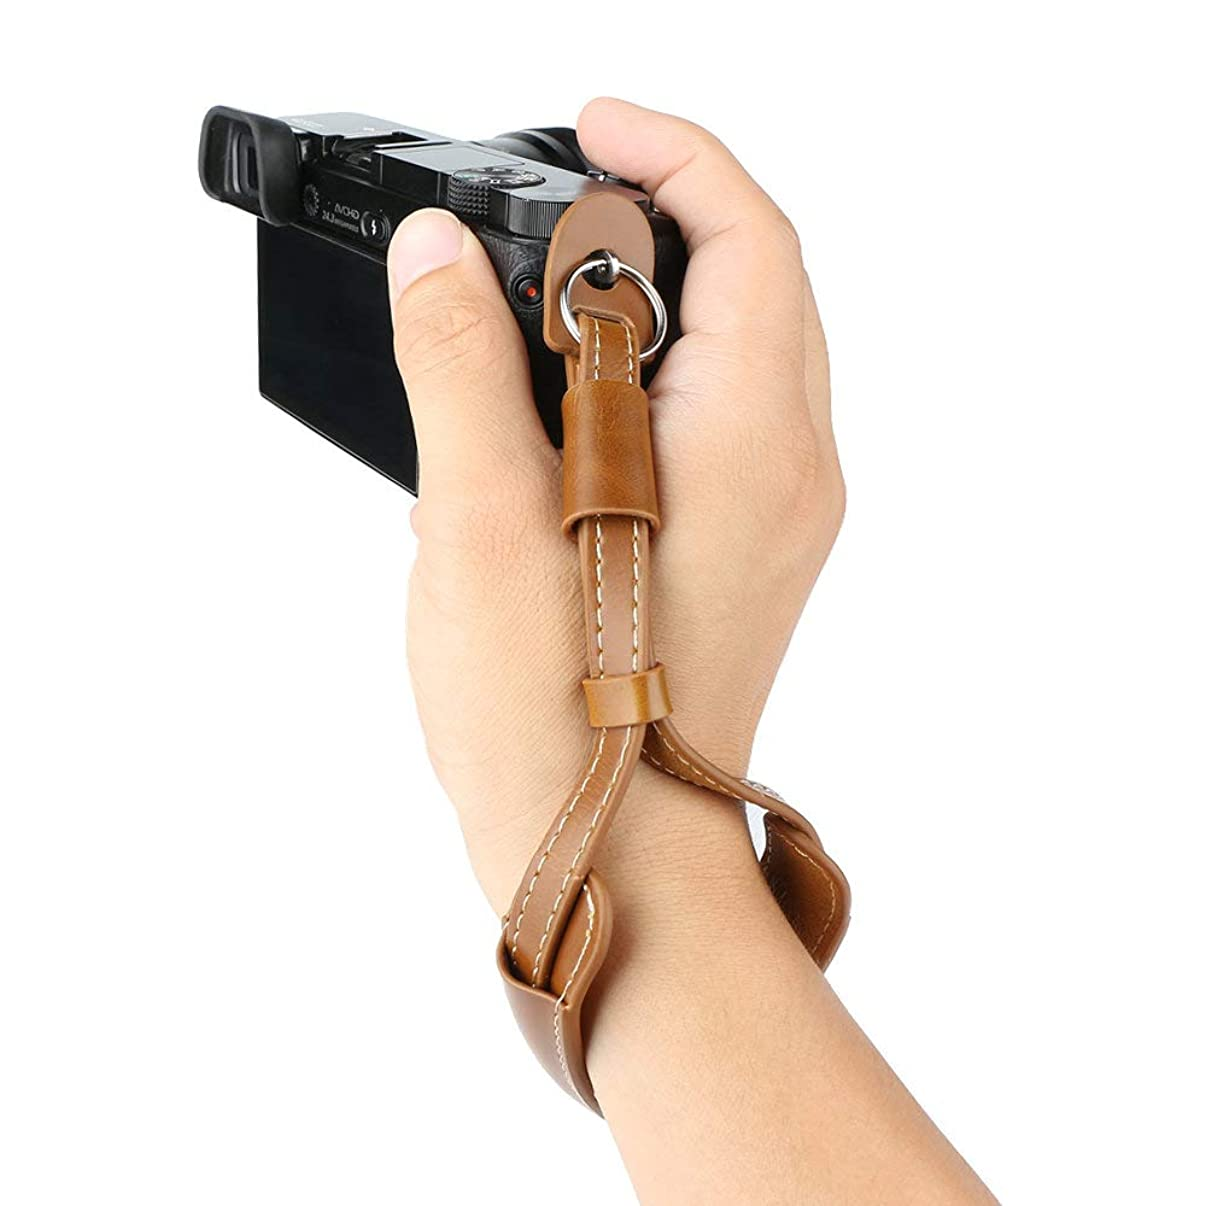 Leather Camera Hand Wrist Strap Adjustable Camera Strap for A6000 A6300 A6500 X100F X100T X100S X100 X-T2 X-T10 X-T20 X-E2 X-E3 and Other Mirrorless Cameras (Brown)